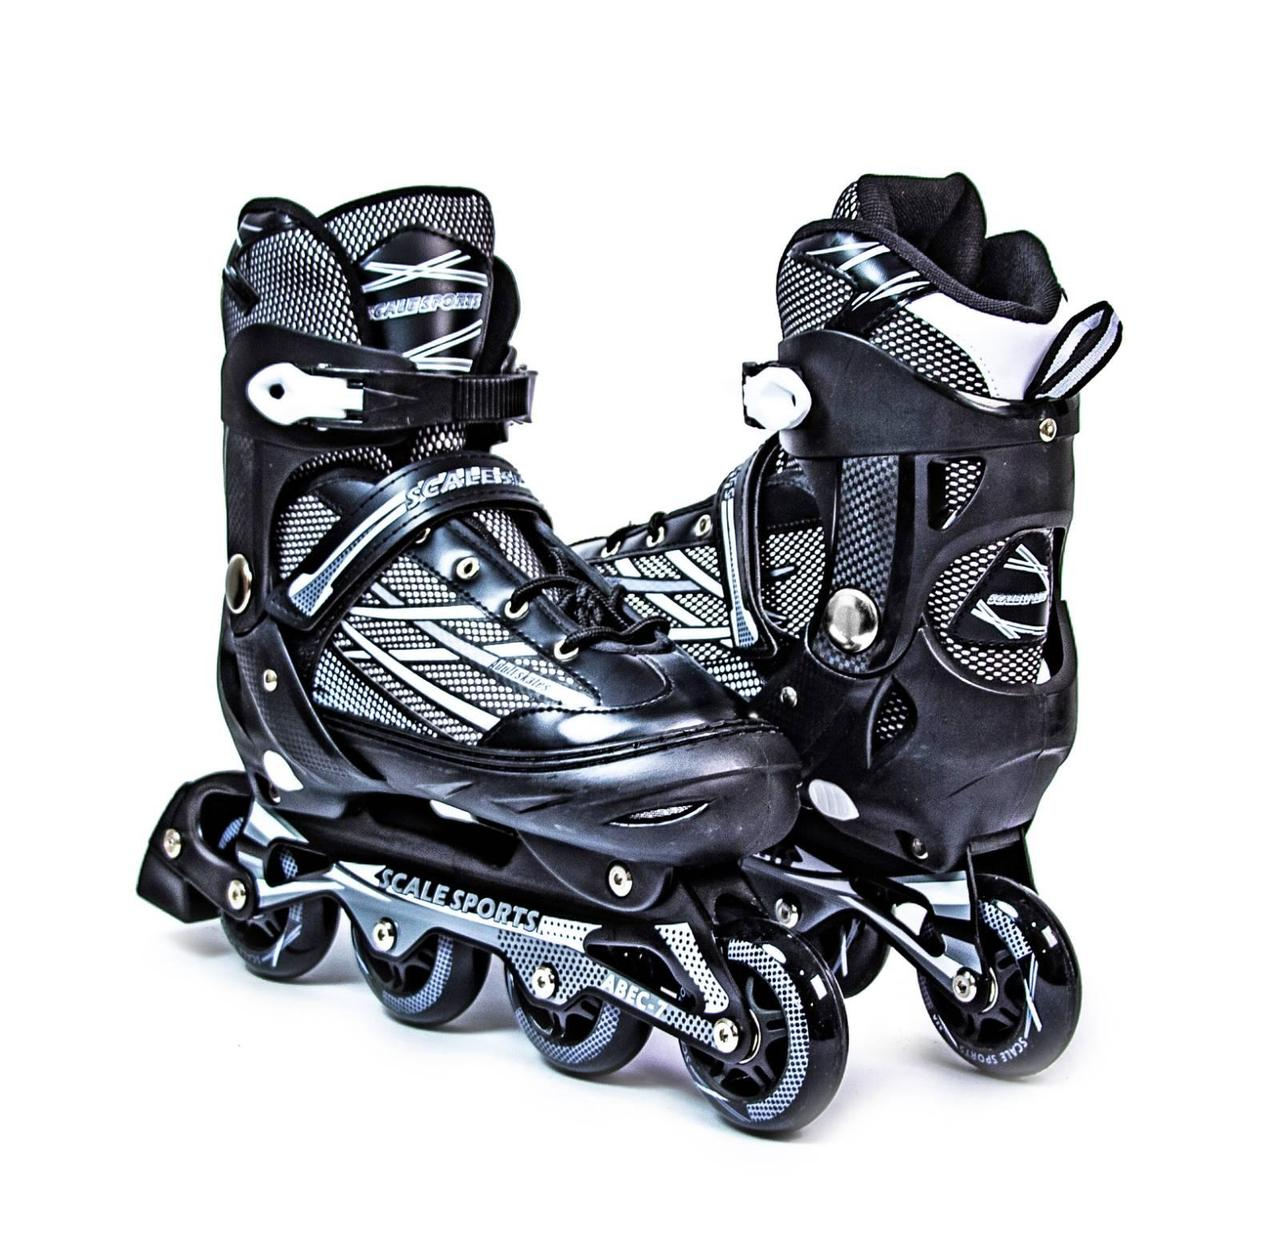 Ролики Scale Sports.Adult Skates. Black размер 41-44